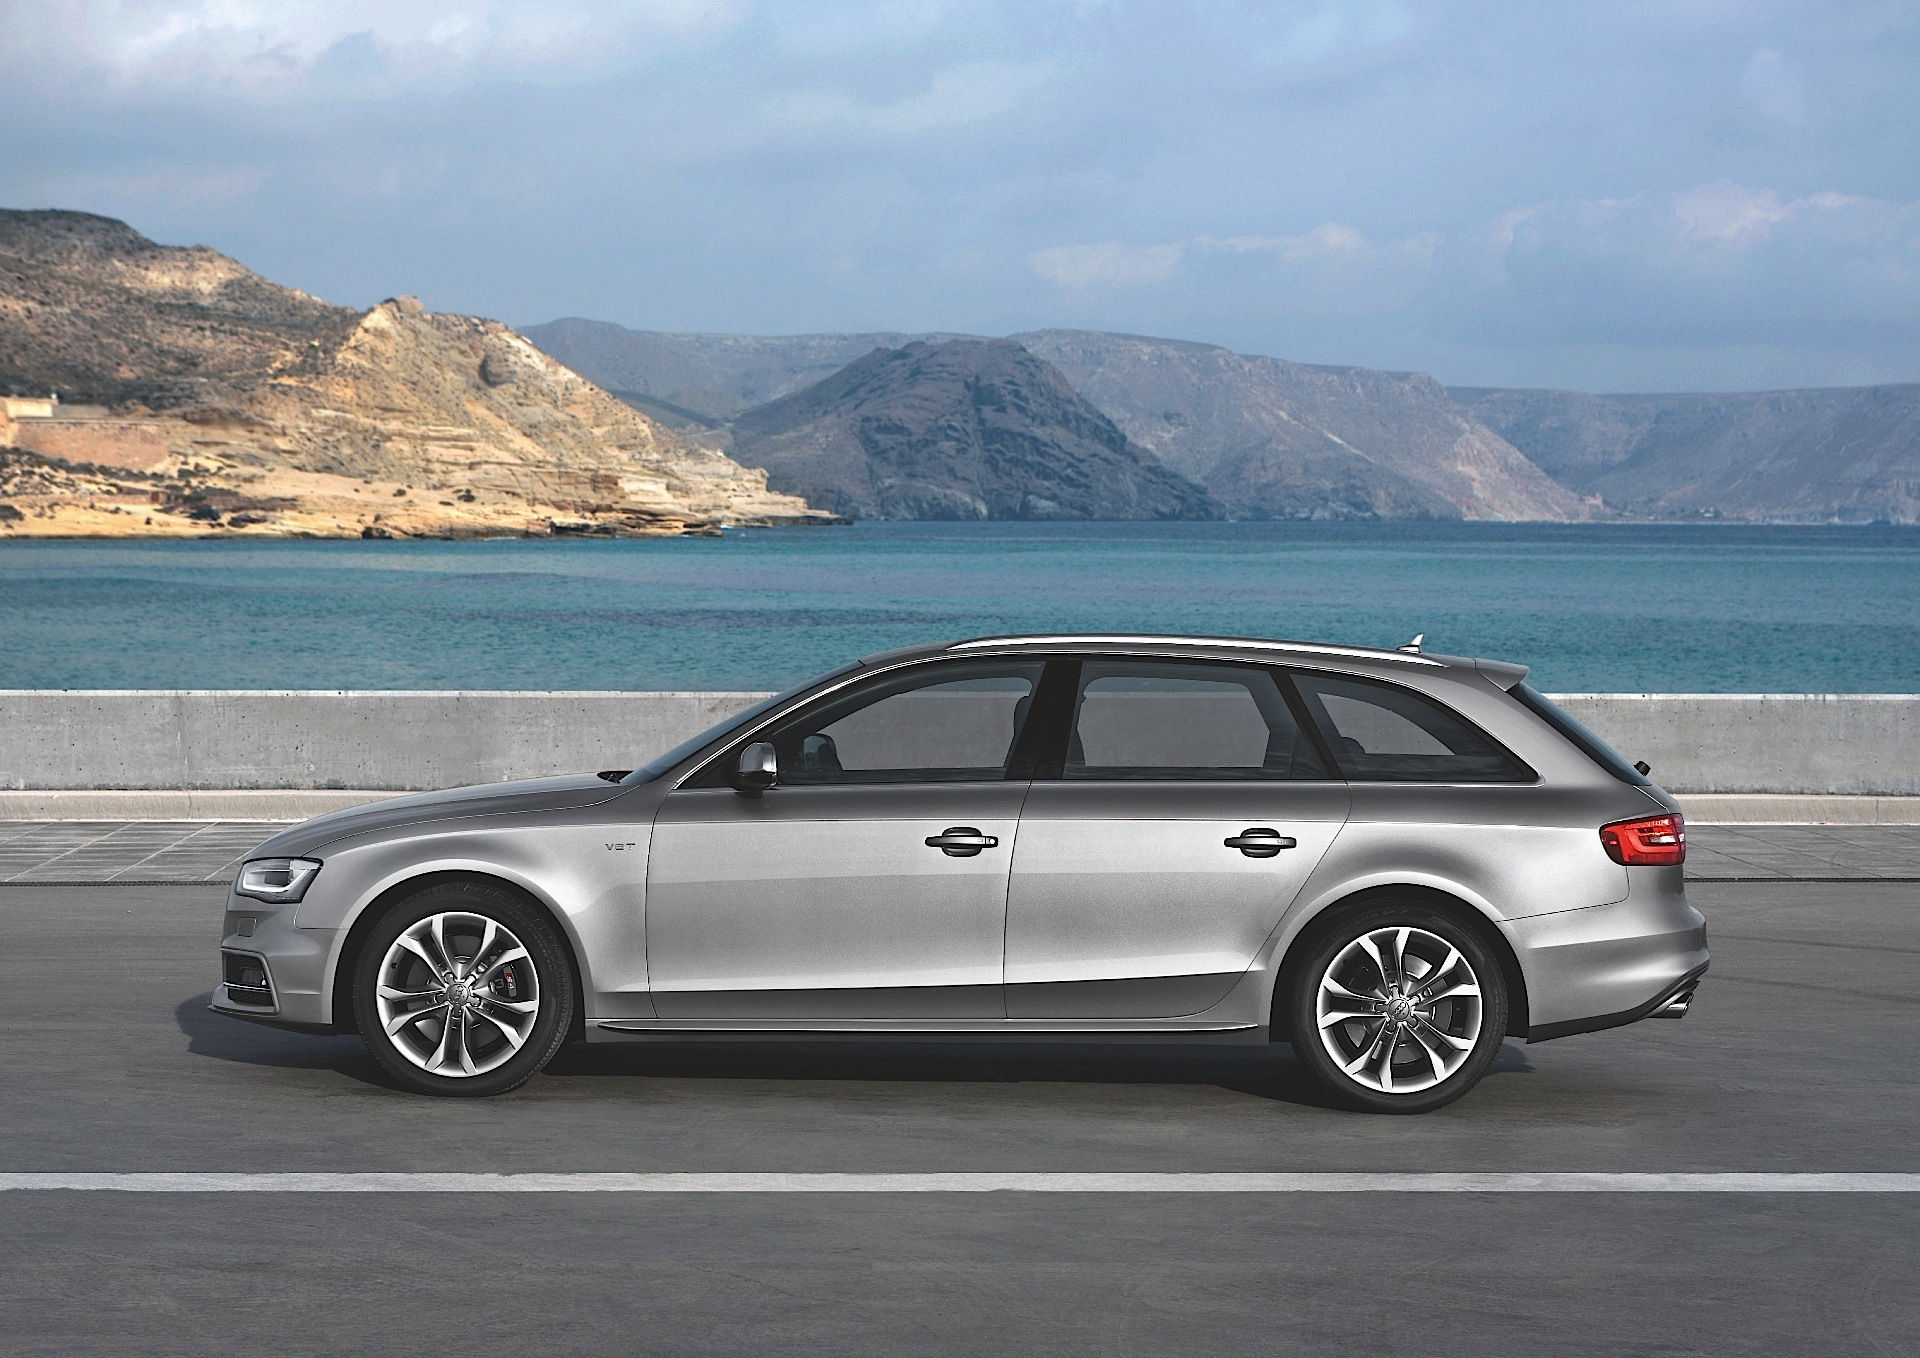 Audi a4 s line station wagon 2015 review 2009